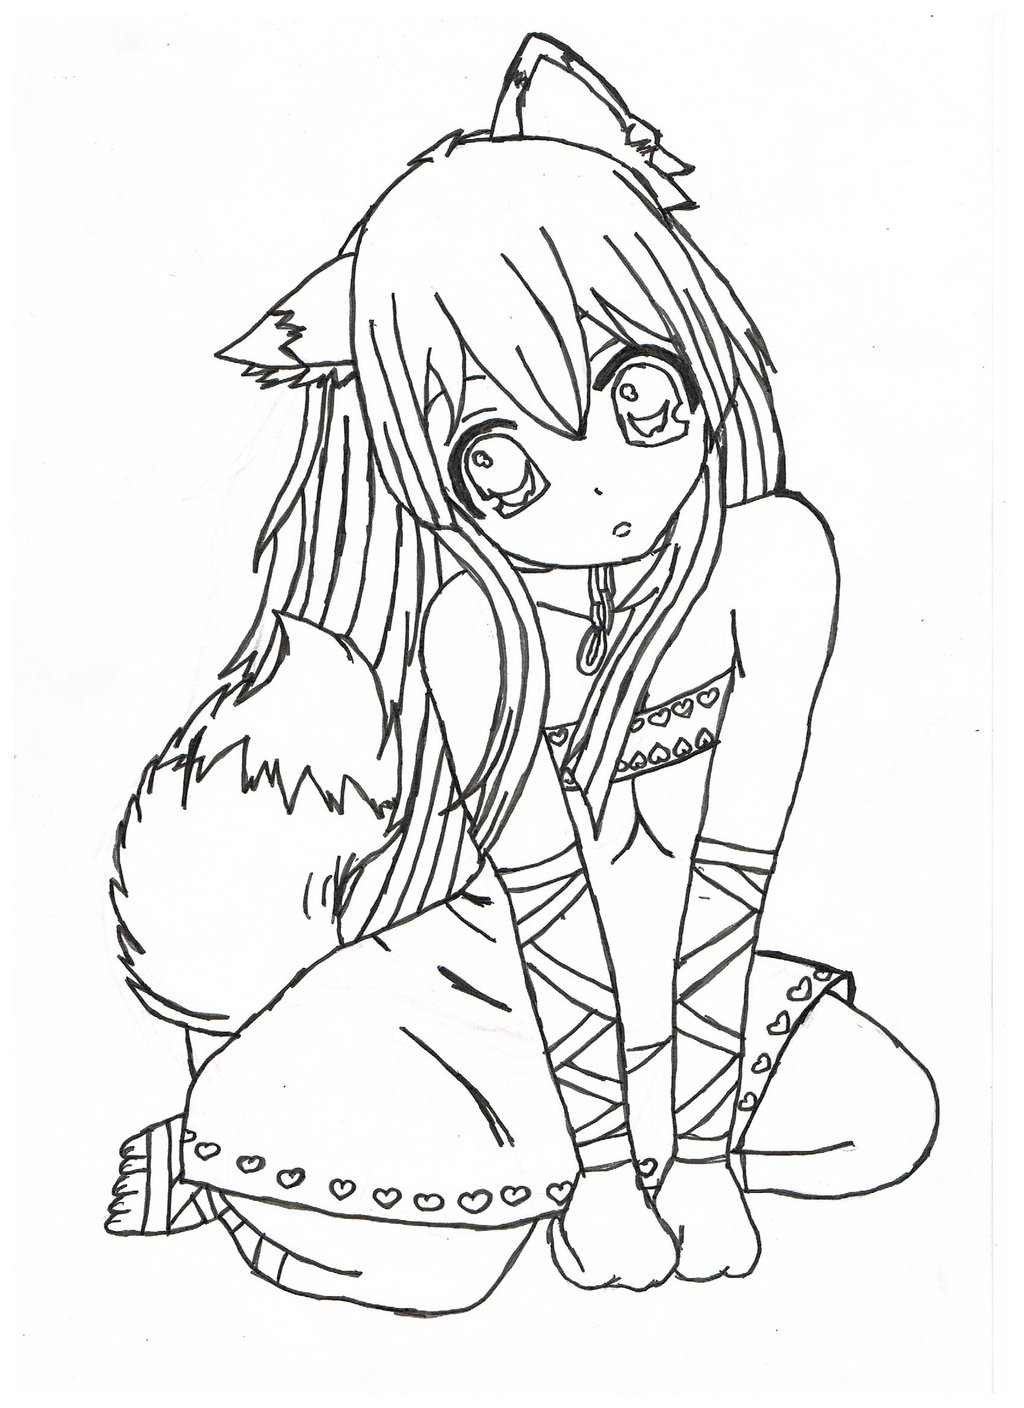 Cool Anime Drawing at GetDrawings.com | Free for personal use Cool ...